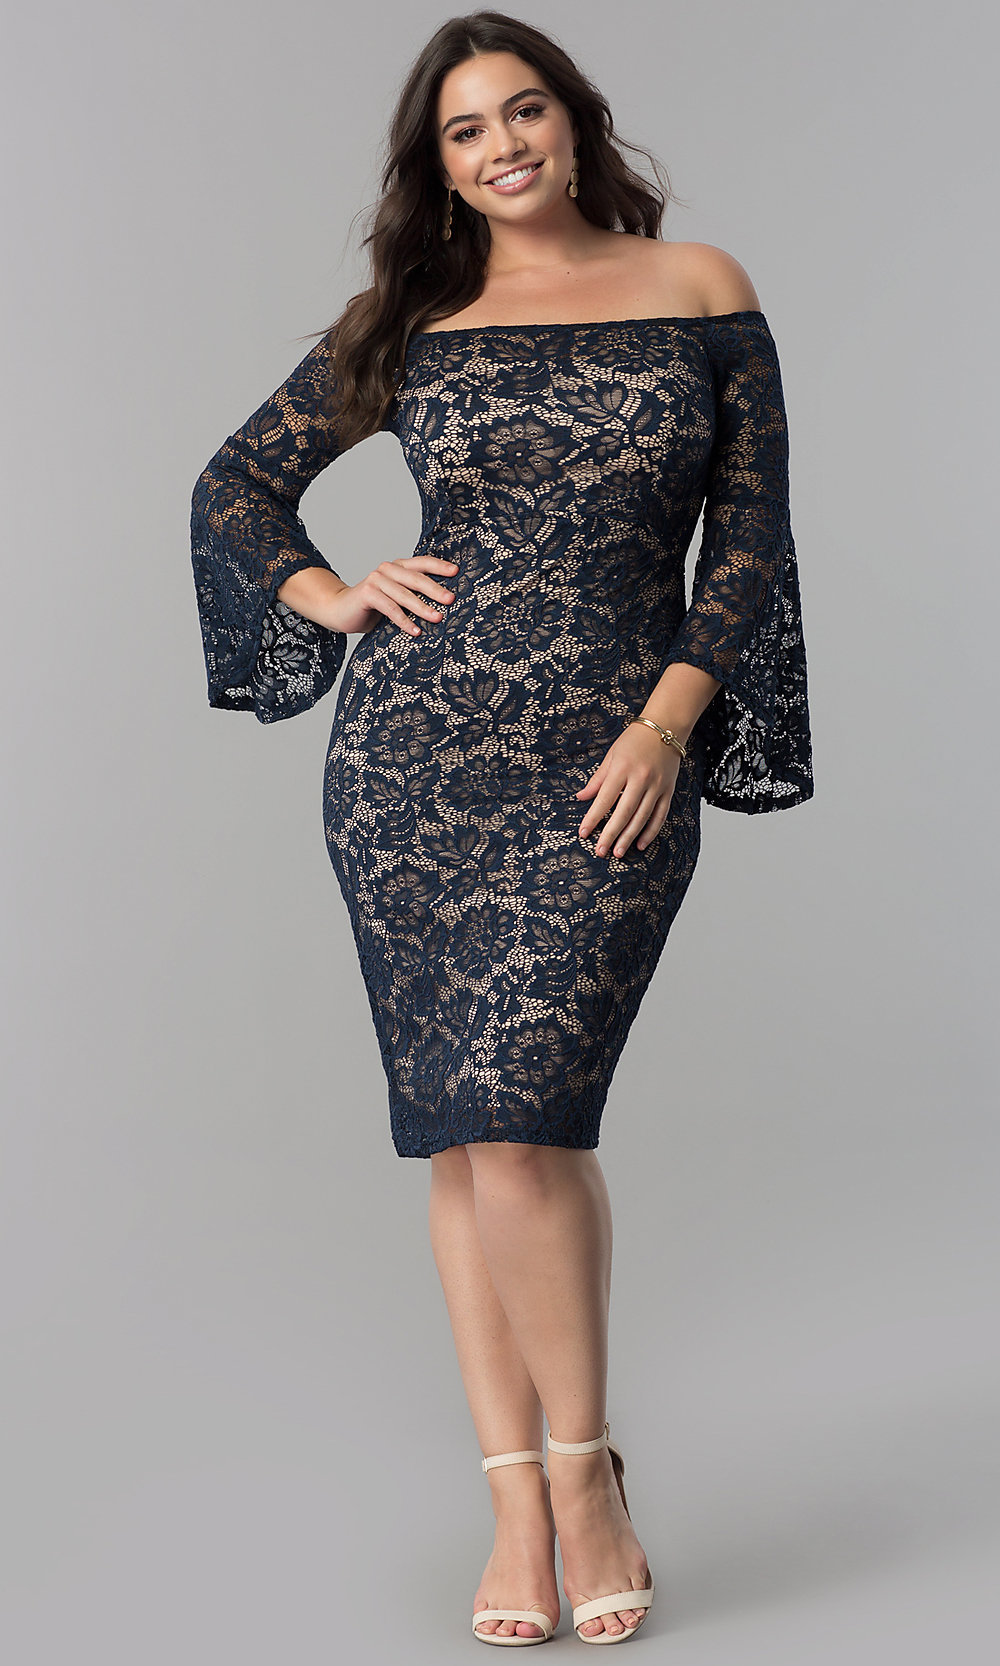 Sexy Plus-Size Dresses, Sexy Plus Gowns - PromGirl